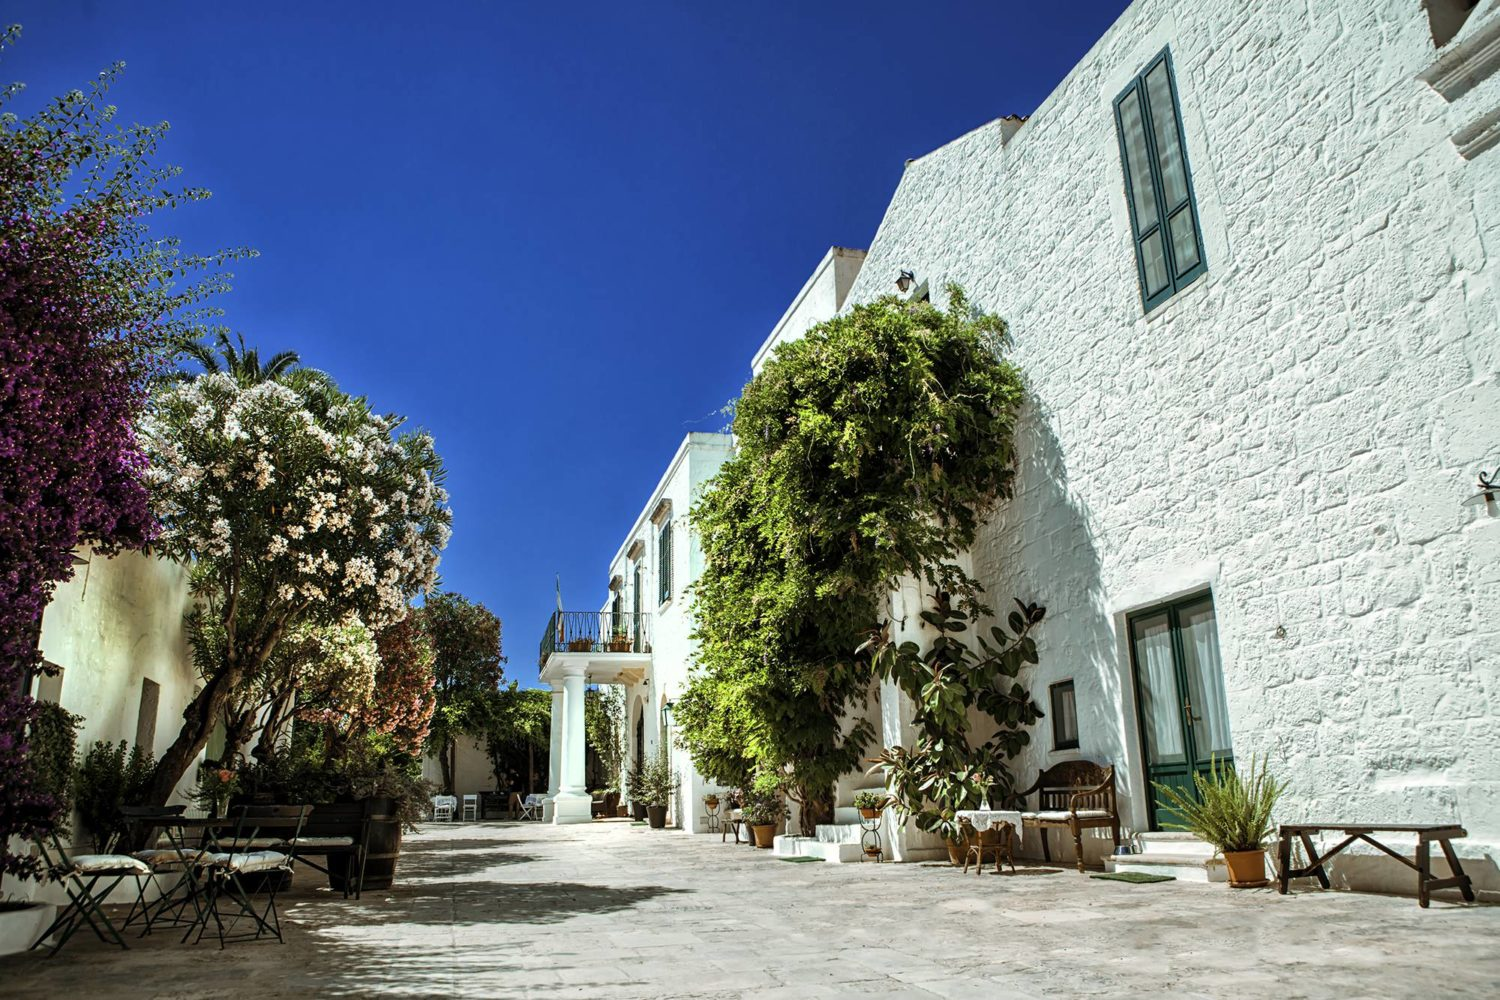 Authentic food experience in Puglia